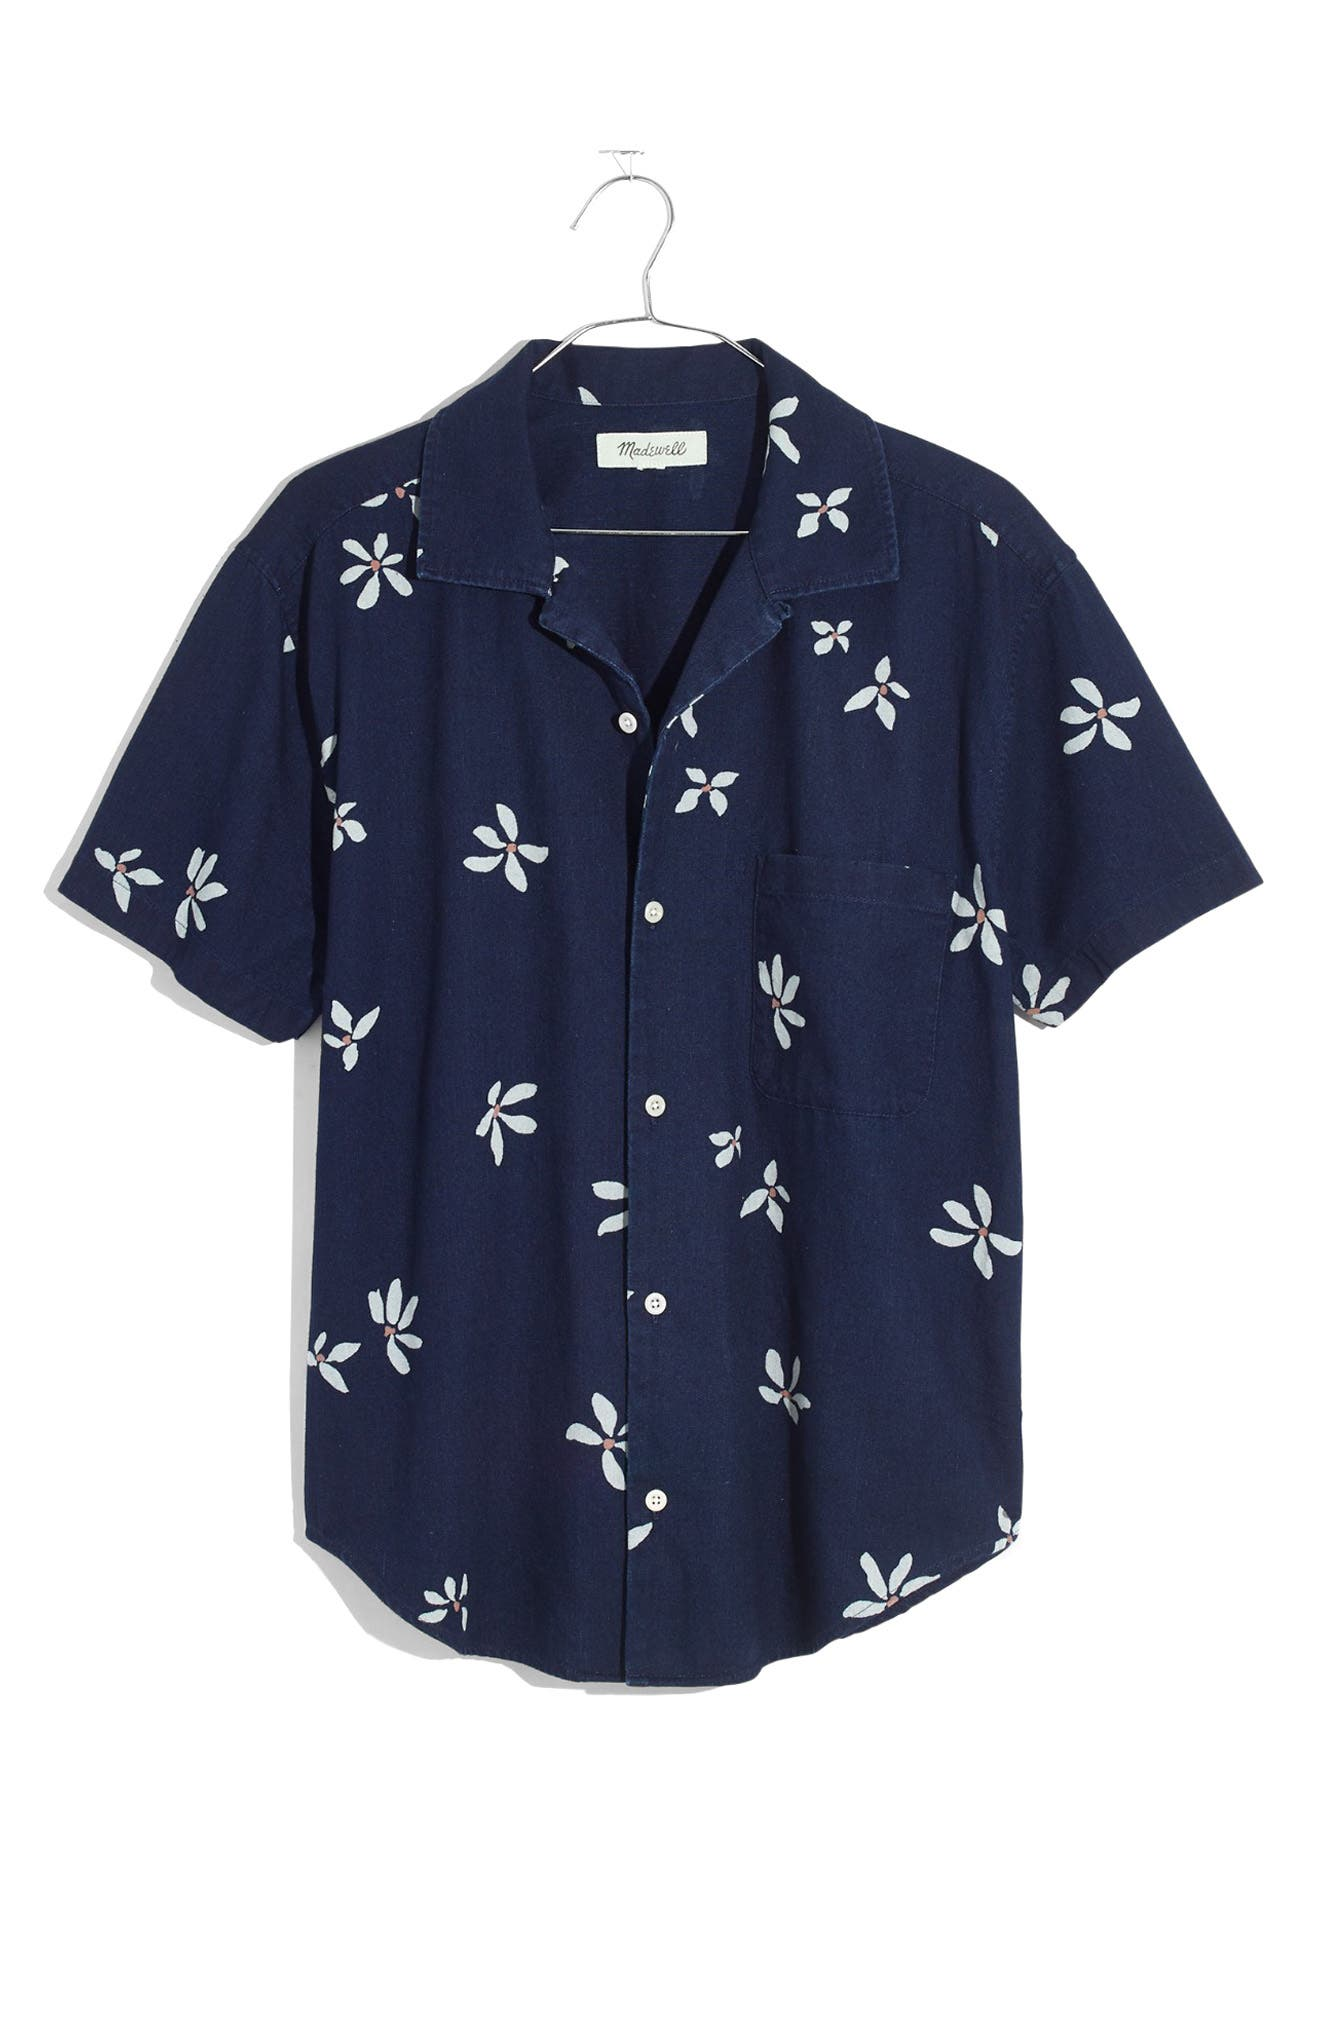 Madewell Floral Easy Button-Up Camp Shirt | Nordstrom